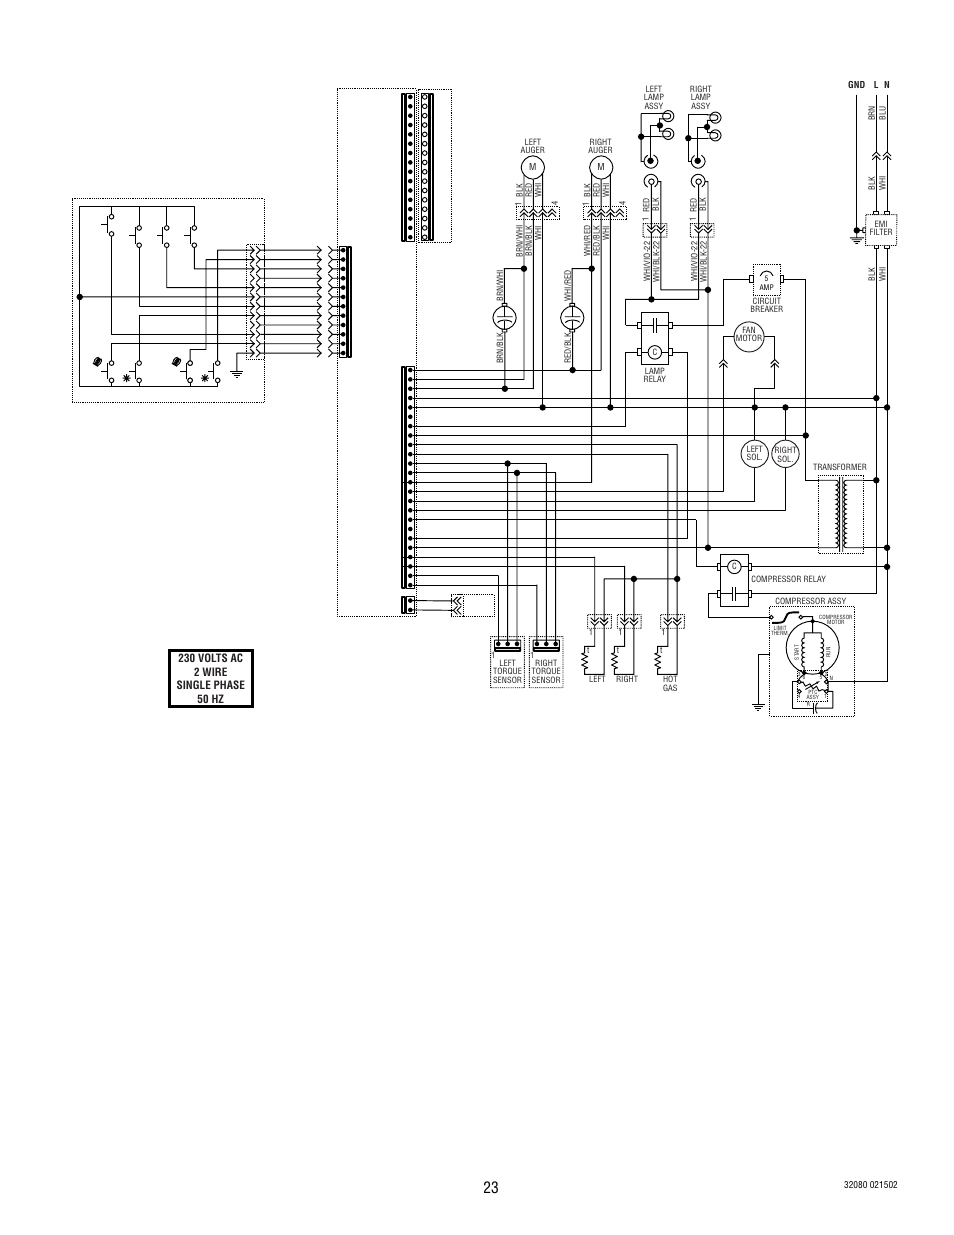 hight resolution of ultra wiring diagram wiring diagrams fender strat ultra wiring diagram ultra wiring diagram